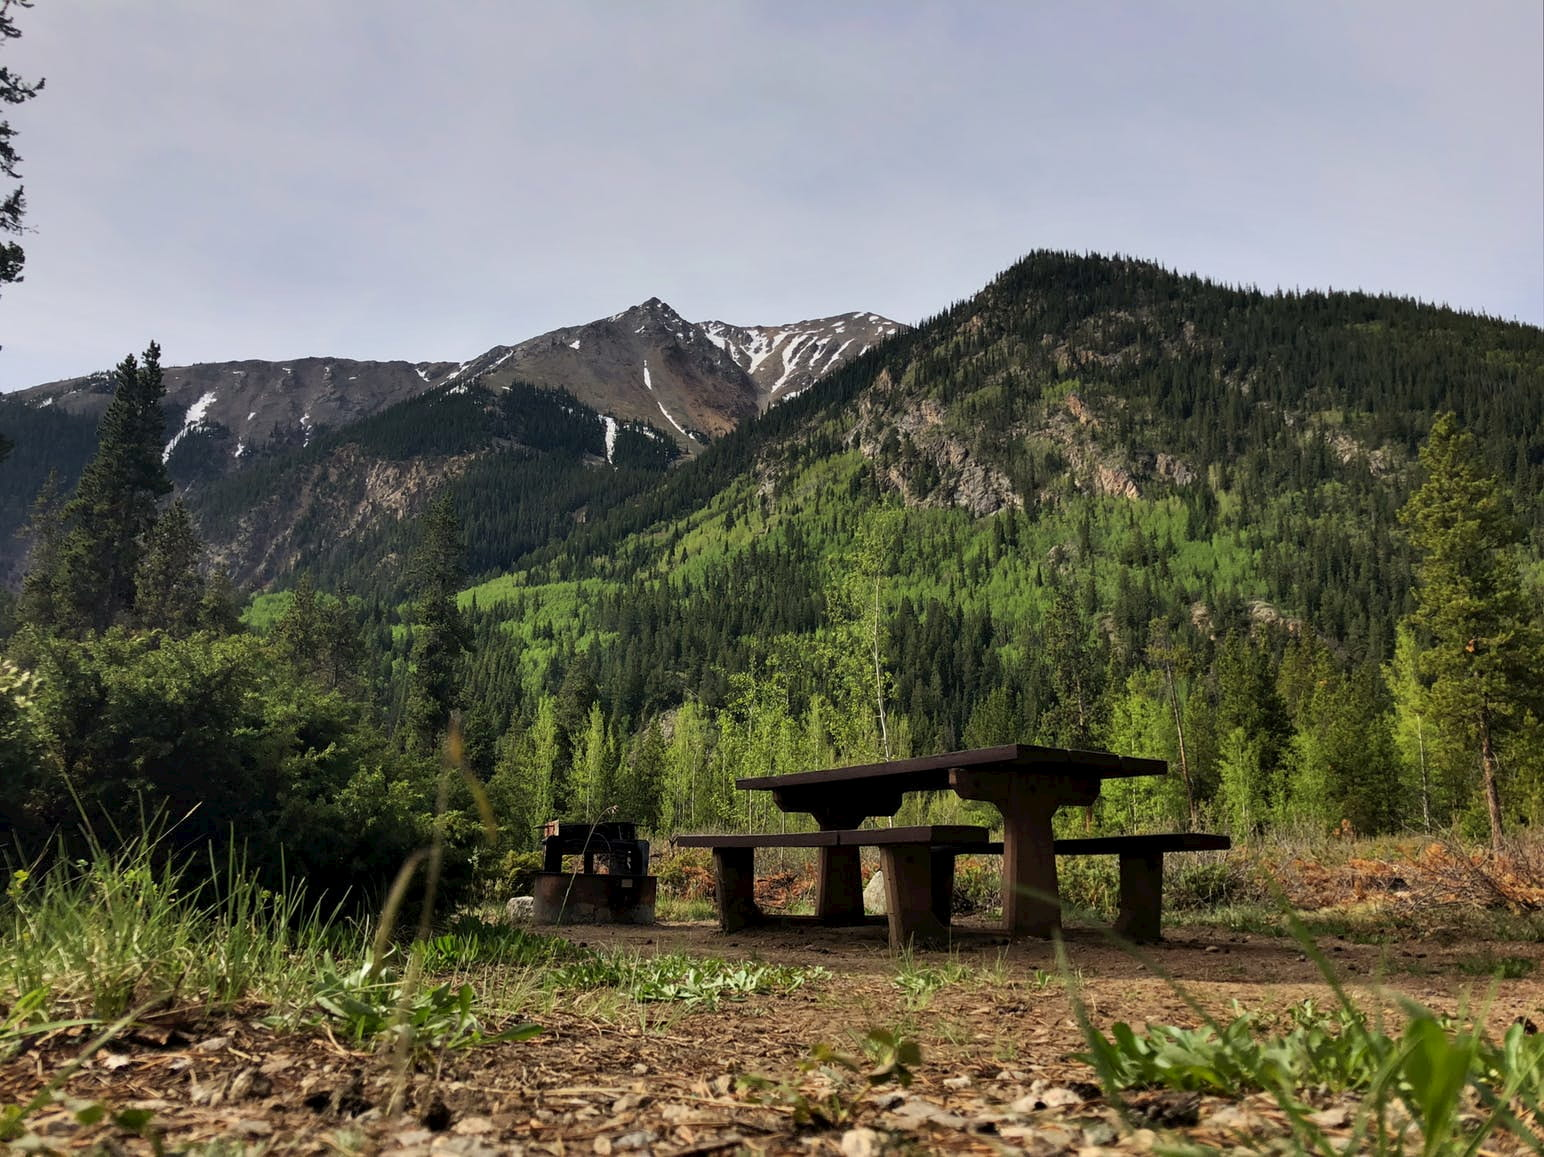 Picnic table and fire ring sit below epic mountain range with snow patches.